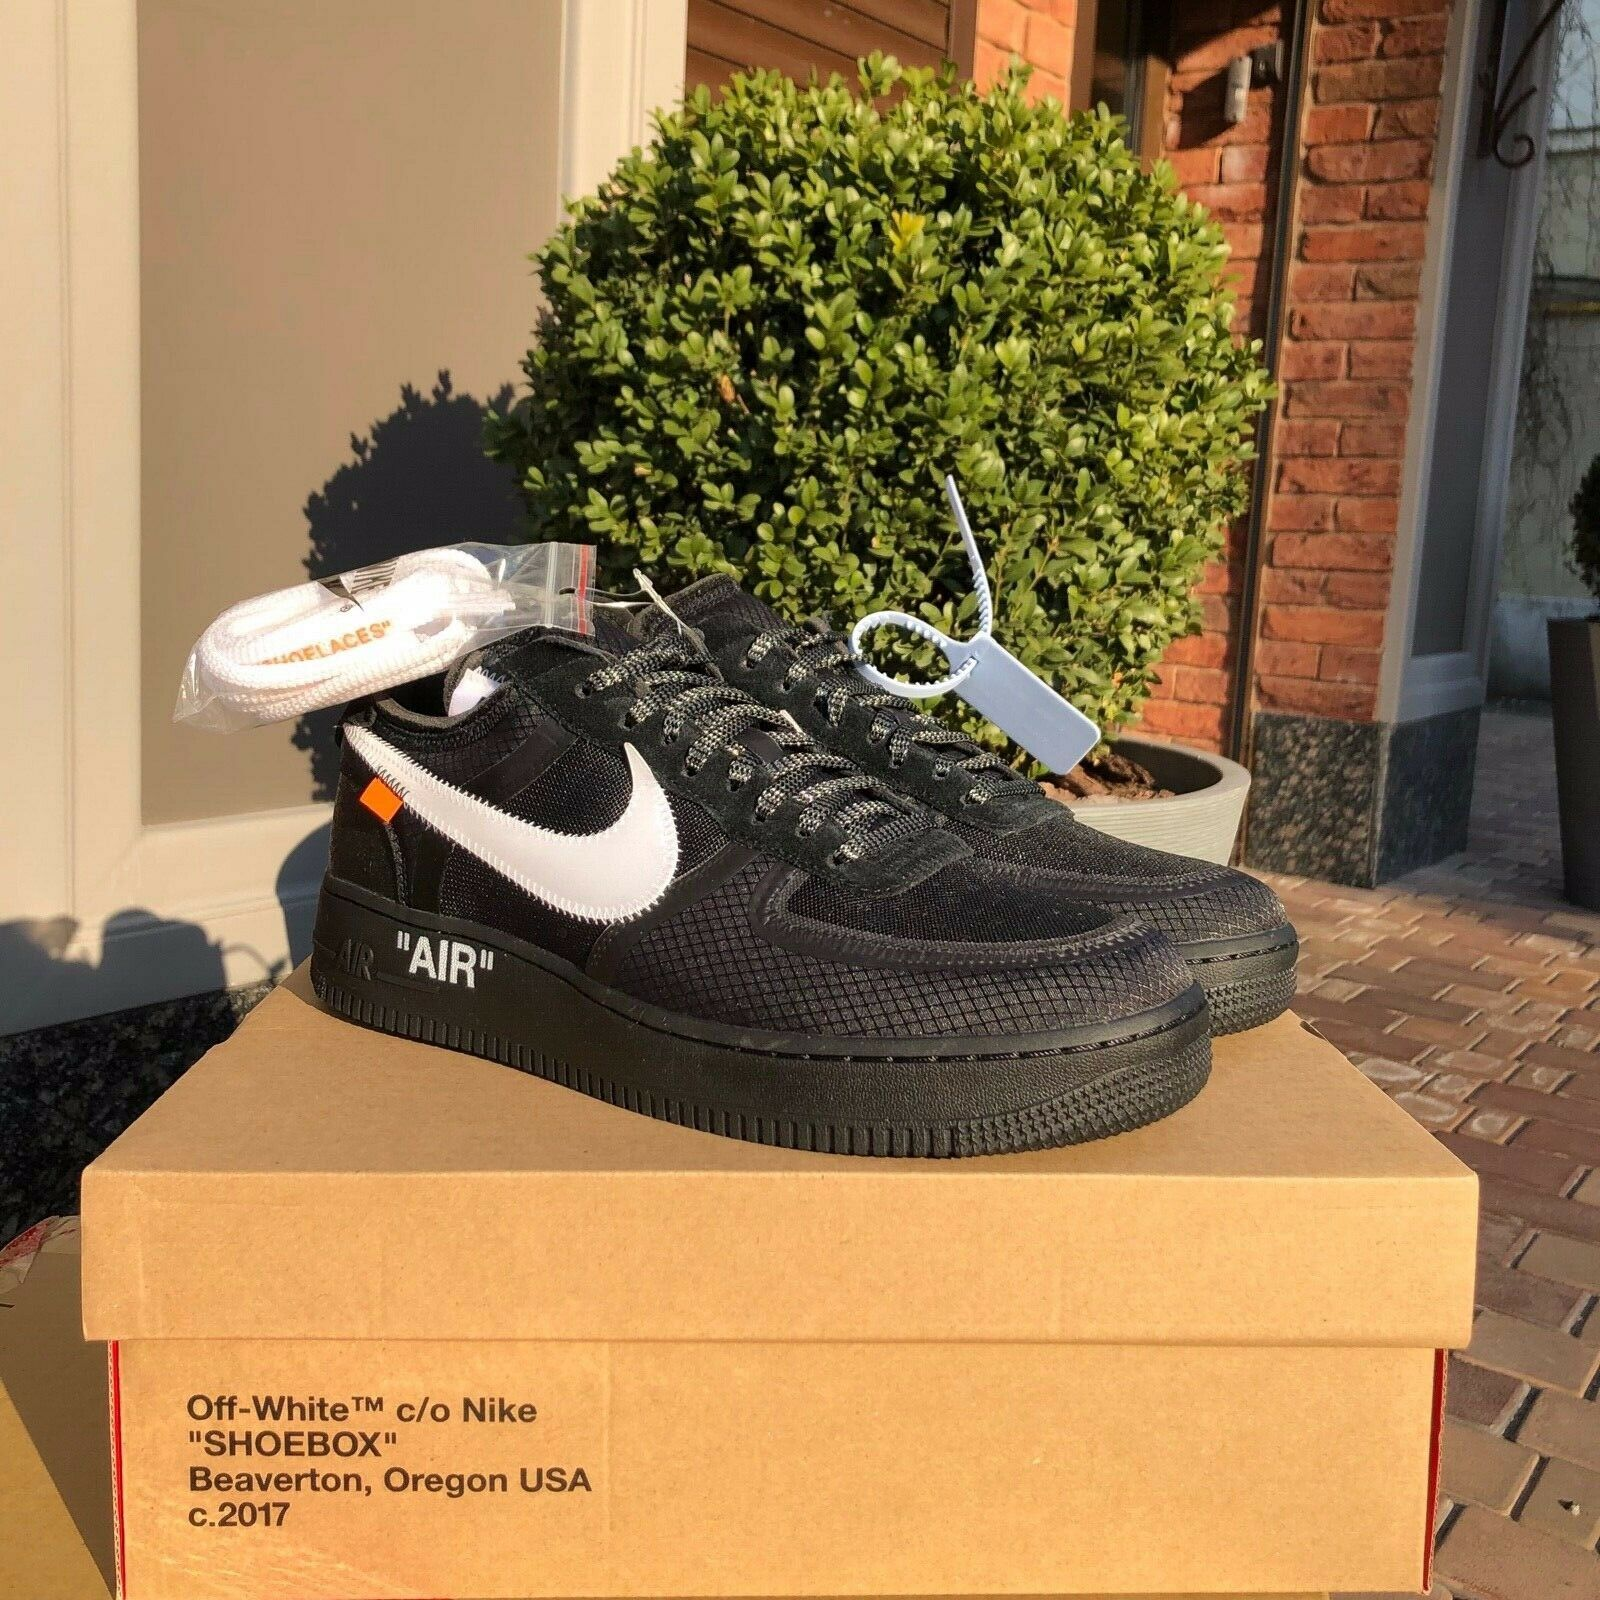 Nike x Off-bianca The 10 Air Force 1 Low nero bianca Cone Virgil Abloh AO4606-001